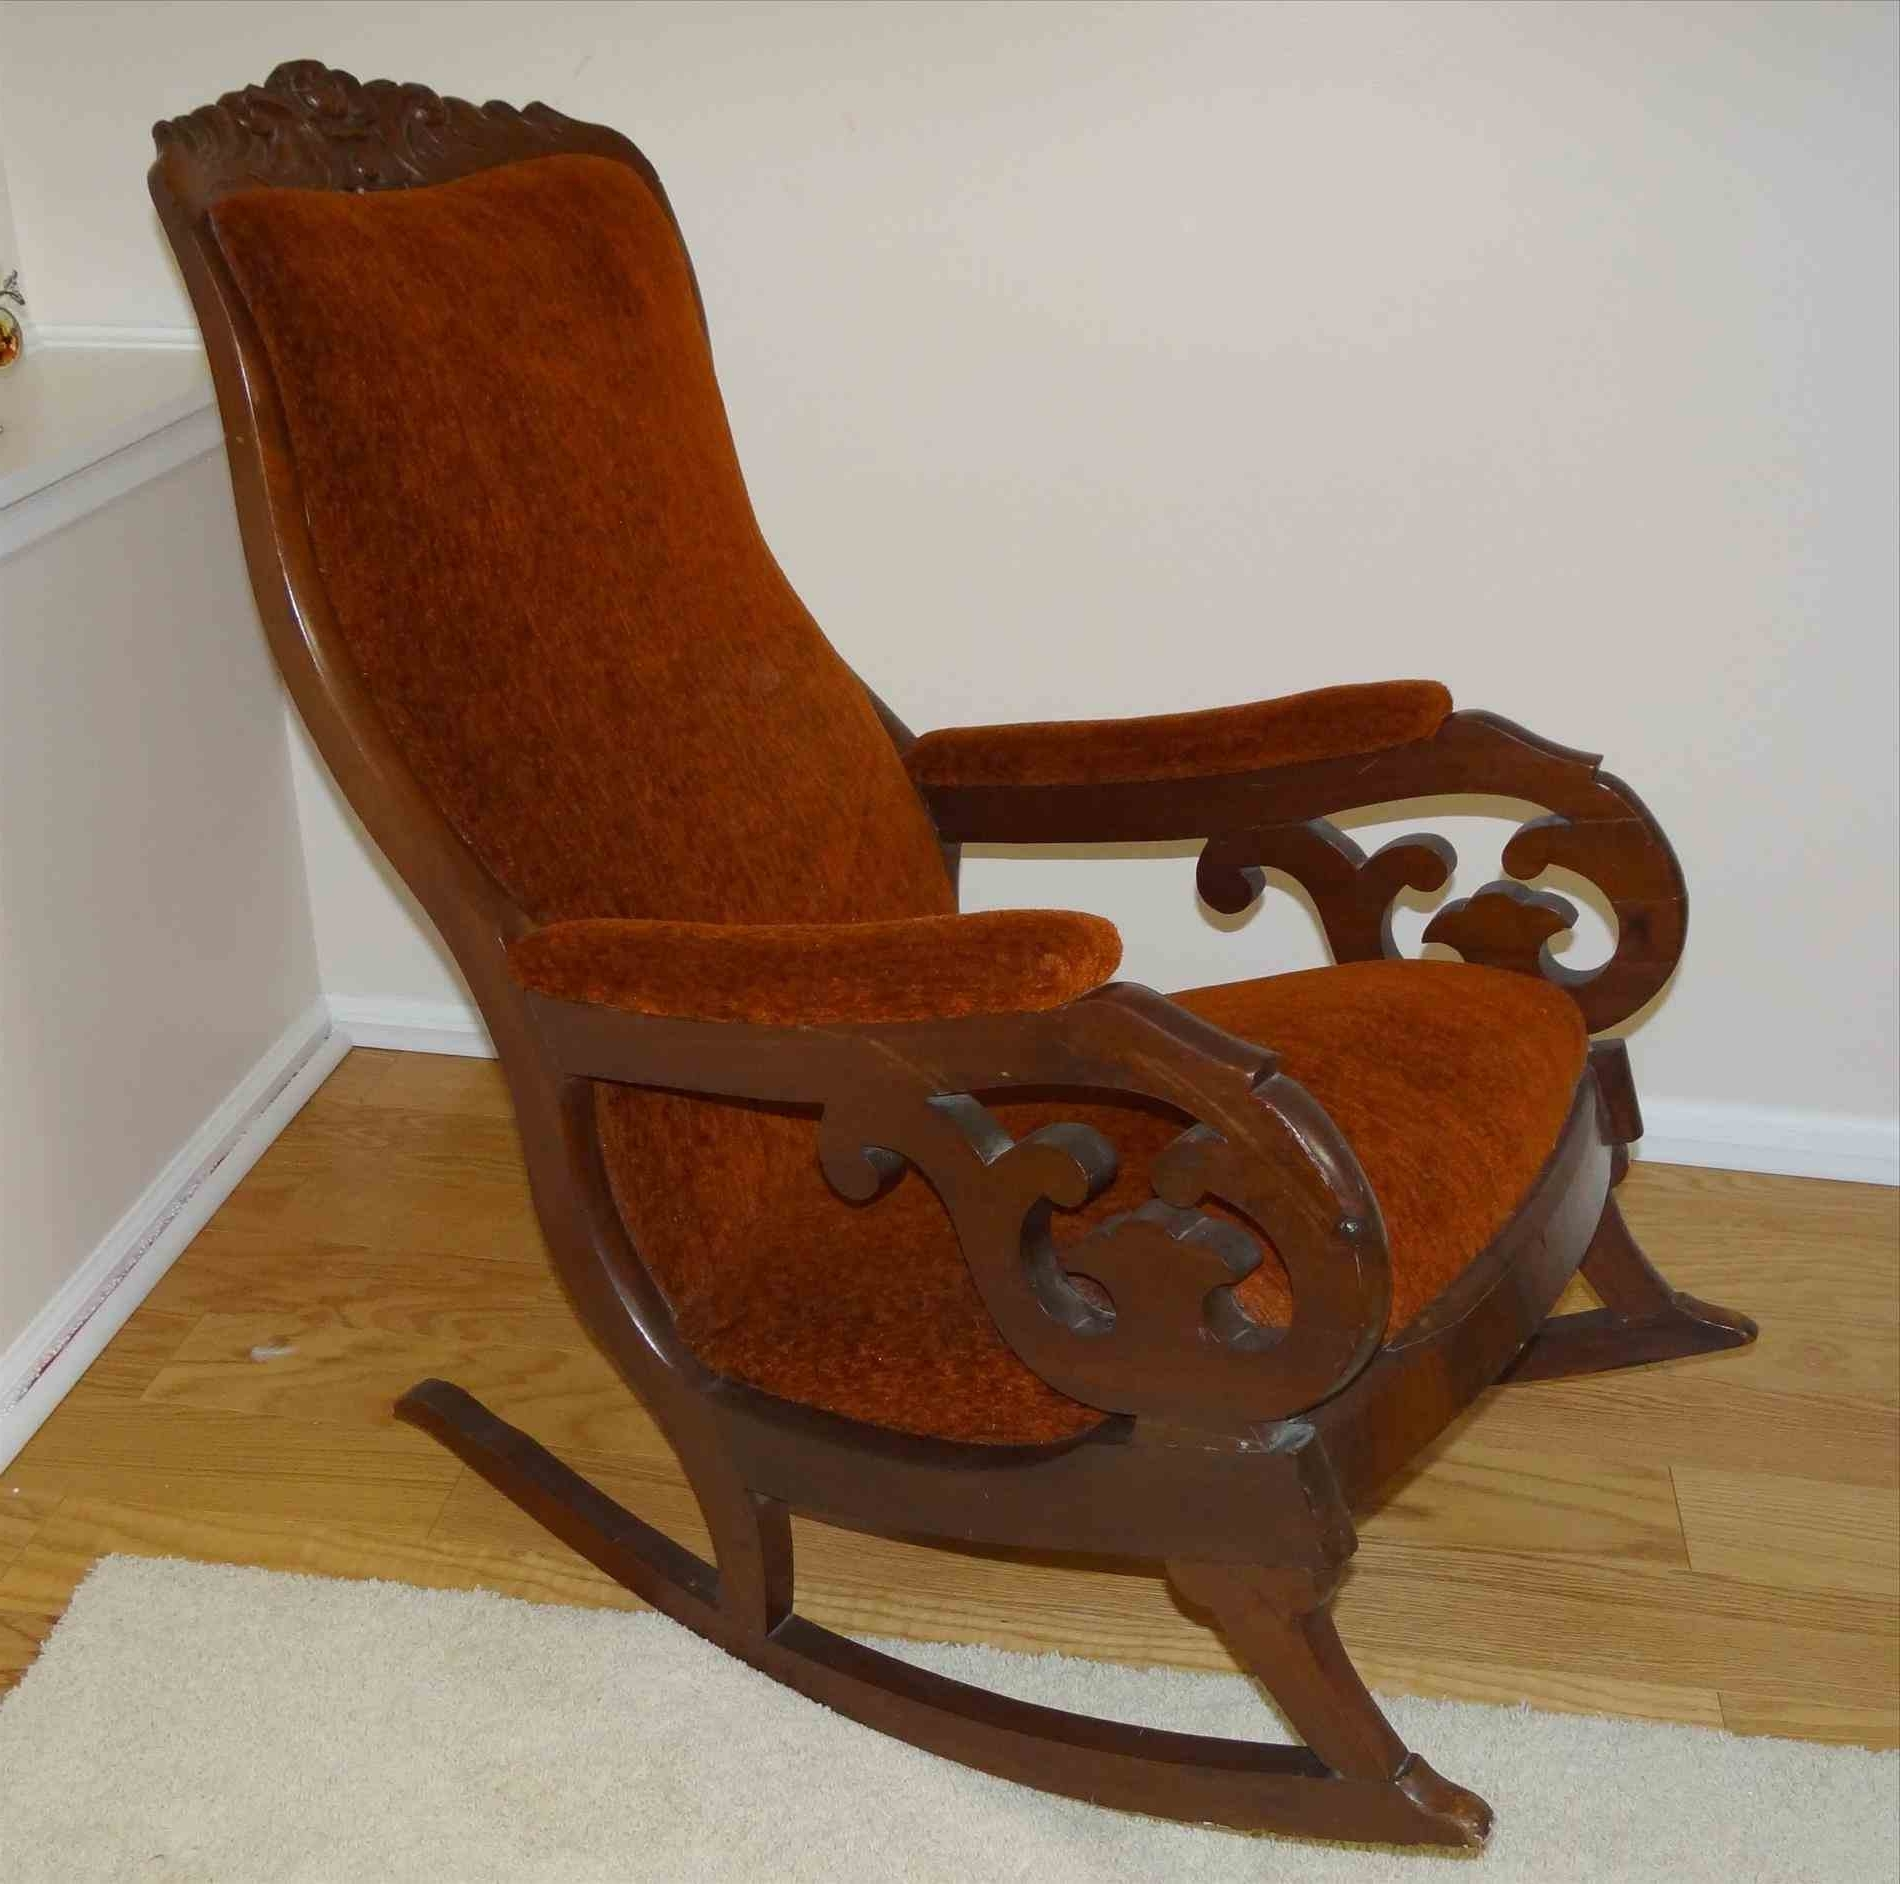 Antique Old Fashioned Rocking Chair Mahogany Upholstered Rocking Regarding Most Popular Old Fashioned Rocking Chairs (View 2 of 20)